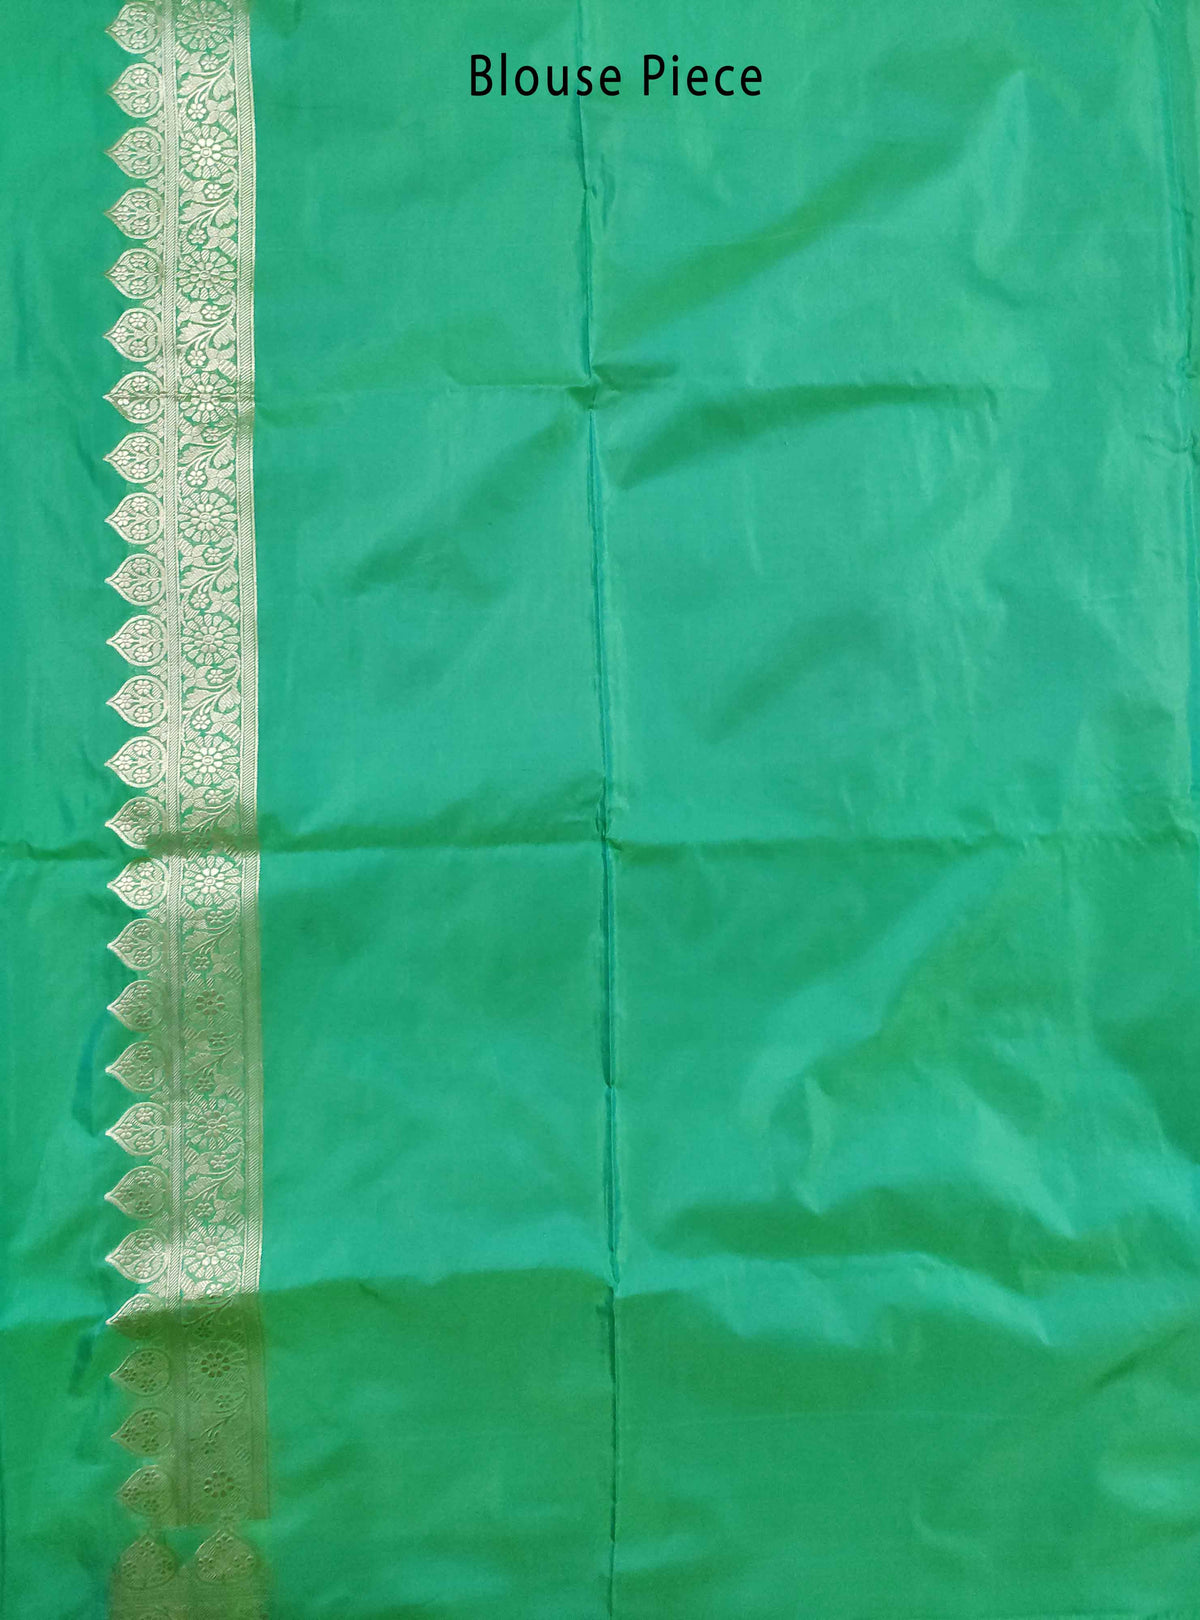 Green Katan silk Handloom Banarasi saree with flower jaal (3) Blouse Piece